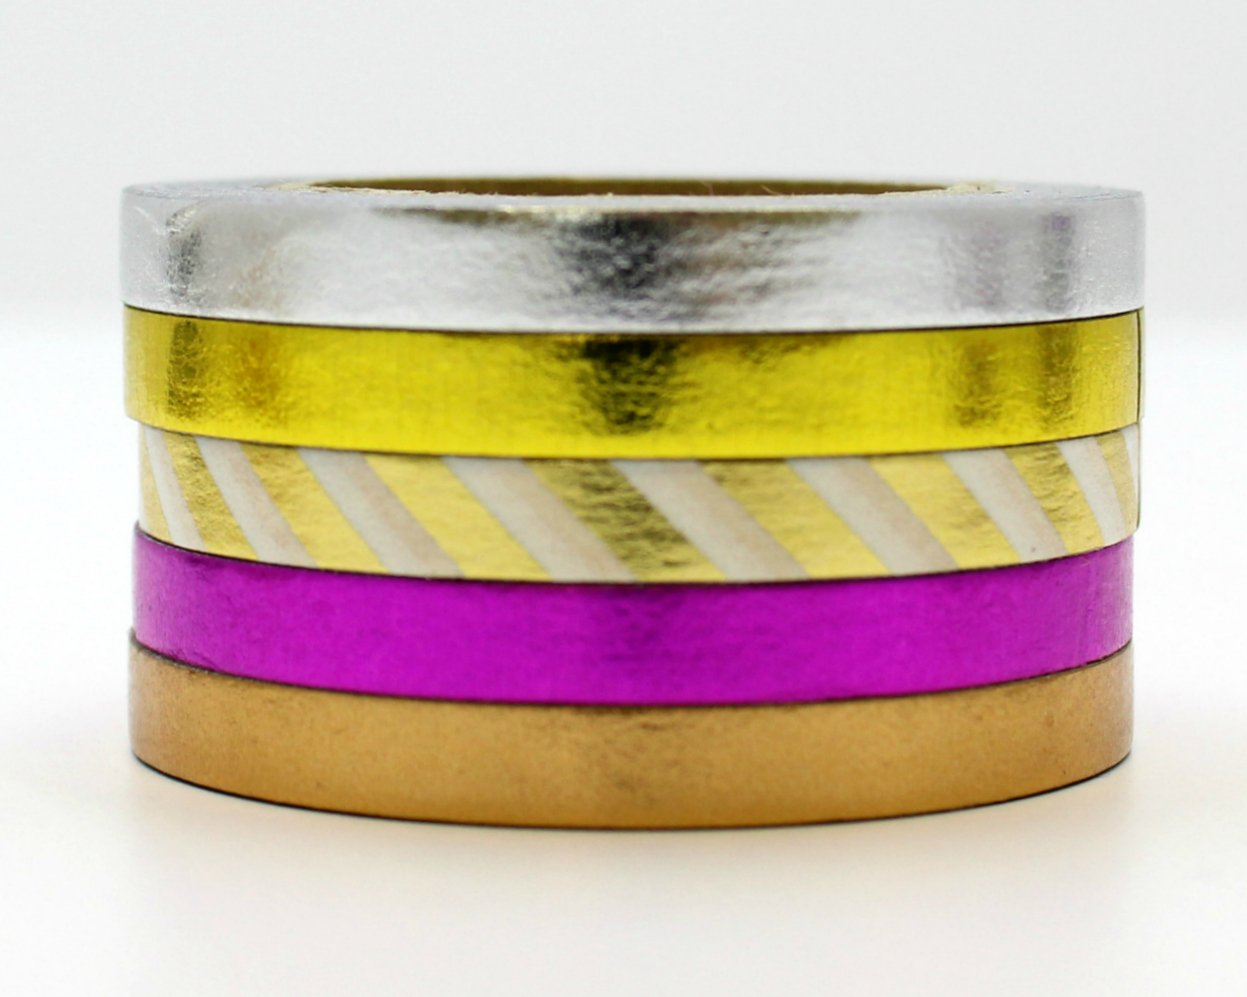 Amazon.com: 5 thin foil washi tapes 5mm silver - Love My Tapes